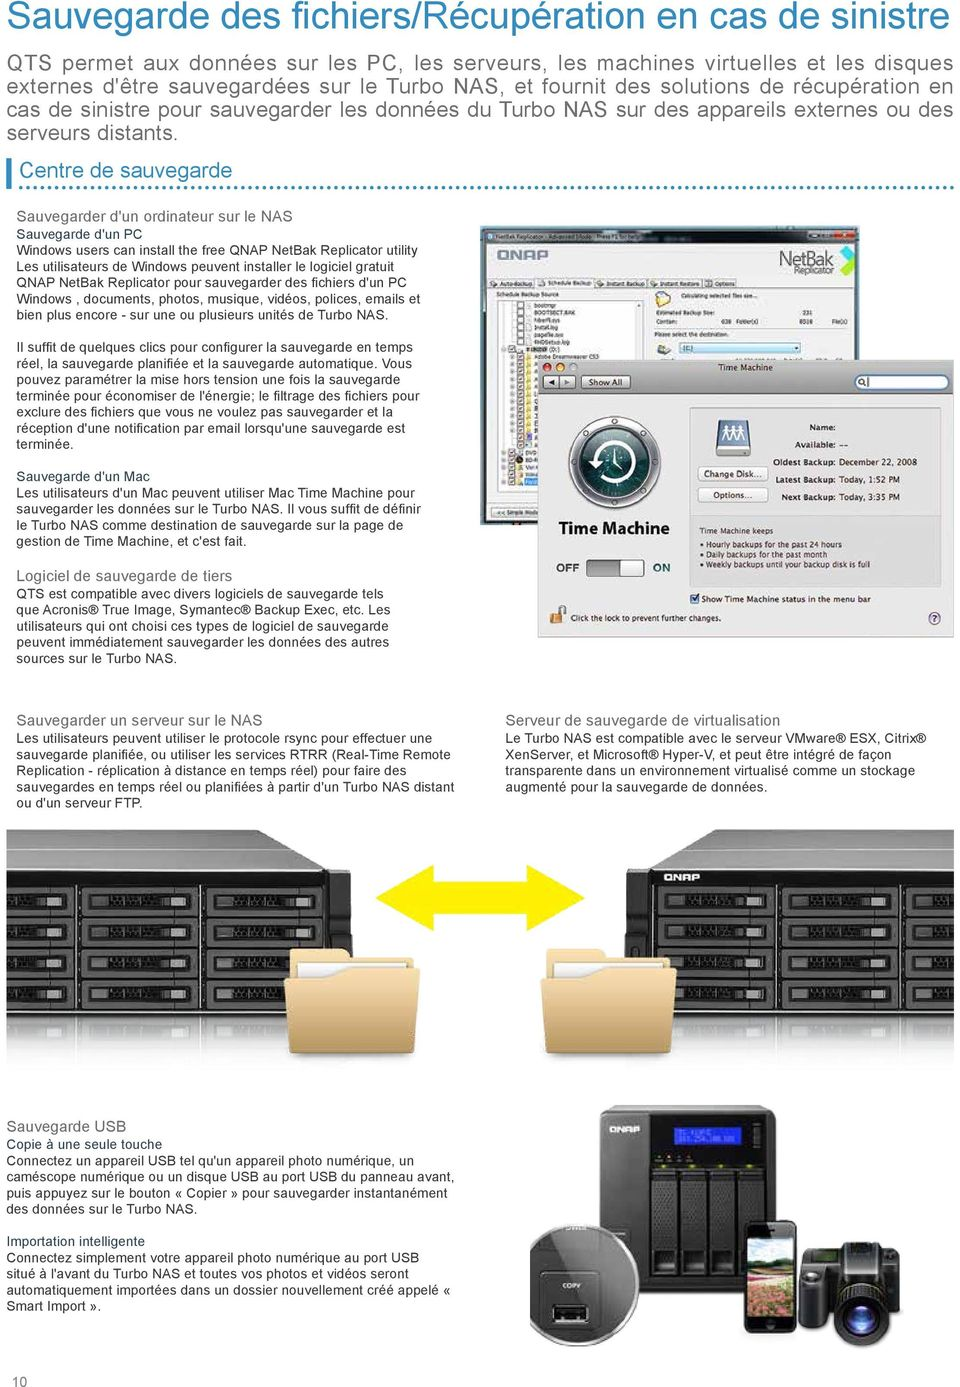 Centre de sauvegarde Sauvegarder d'un ordinateur sur le NAS Sauvegarde d'un PC Windows users can install the free QNAP NetBak Replicator utility Les utilisateurs de Windows peuvent installer le